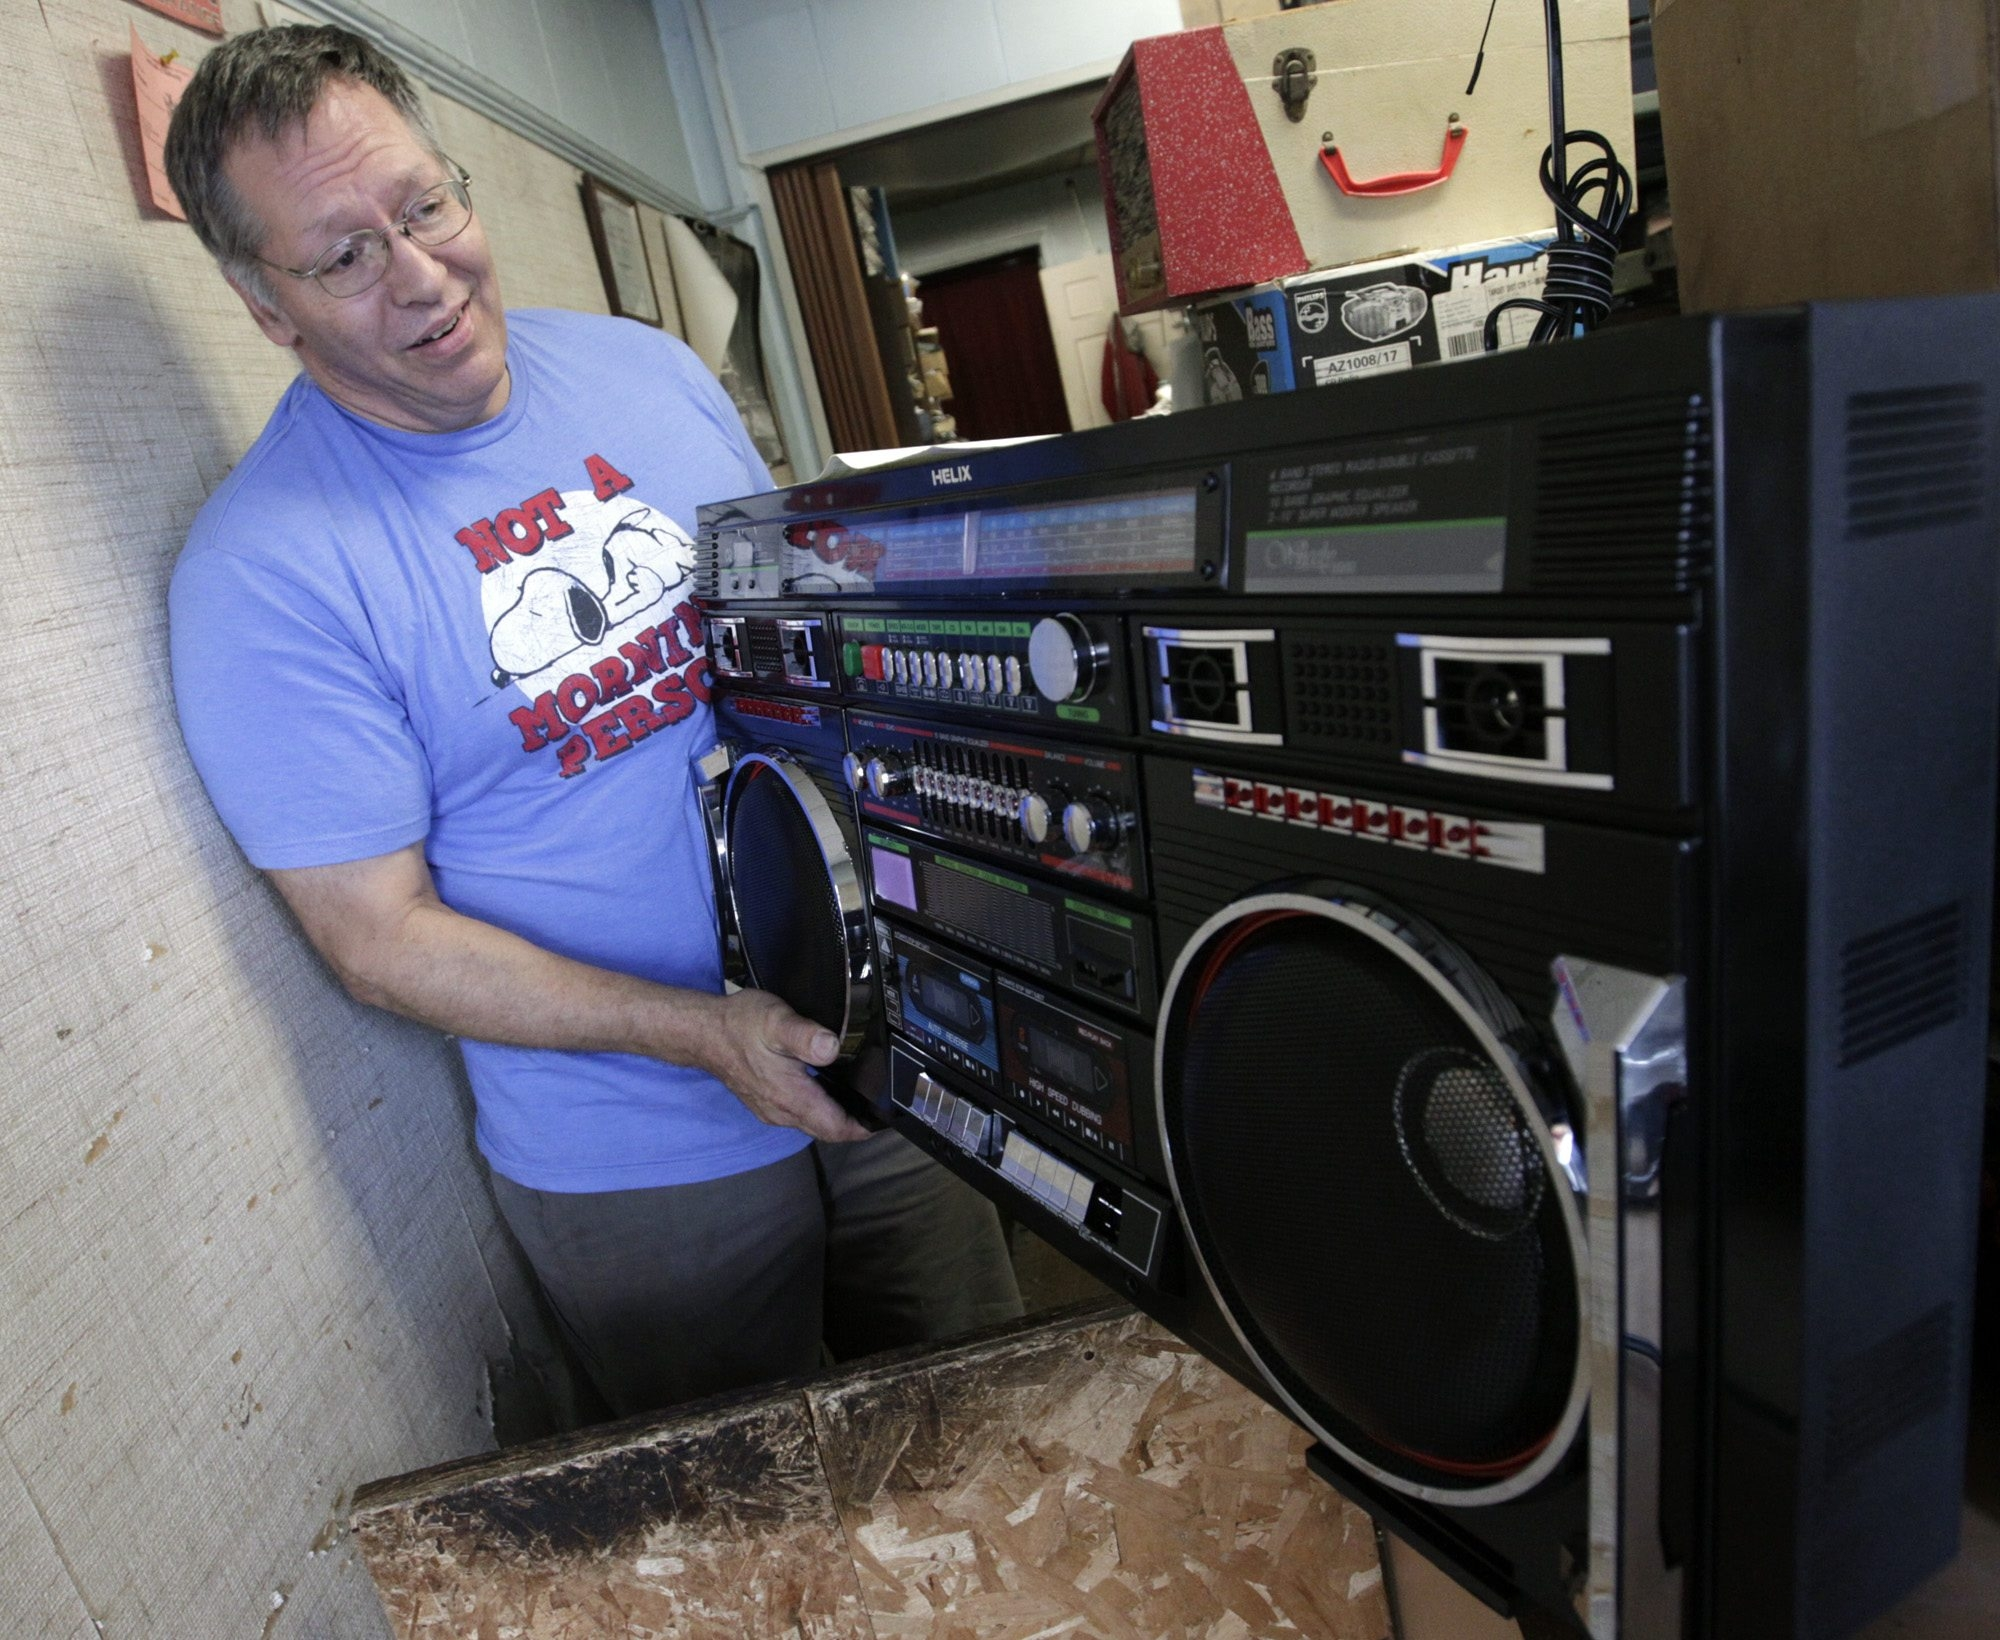 """Jeff Chudy looks over a boom box that was dropped off at his  shop, Precision Audio Service, which he opened in 1979. Chudy has worked on everything from eight tracks to turntables to modern equipment. """"Vinyl's coming back,"""" he said. """"More people are bringing in their old turntables."""""""